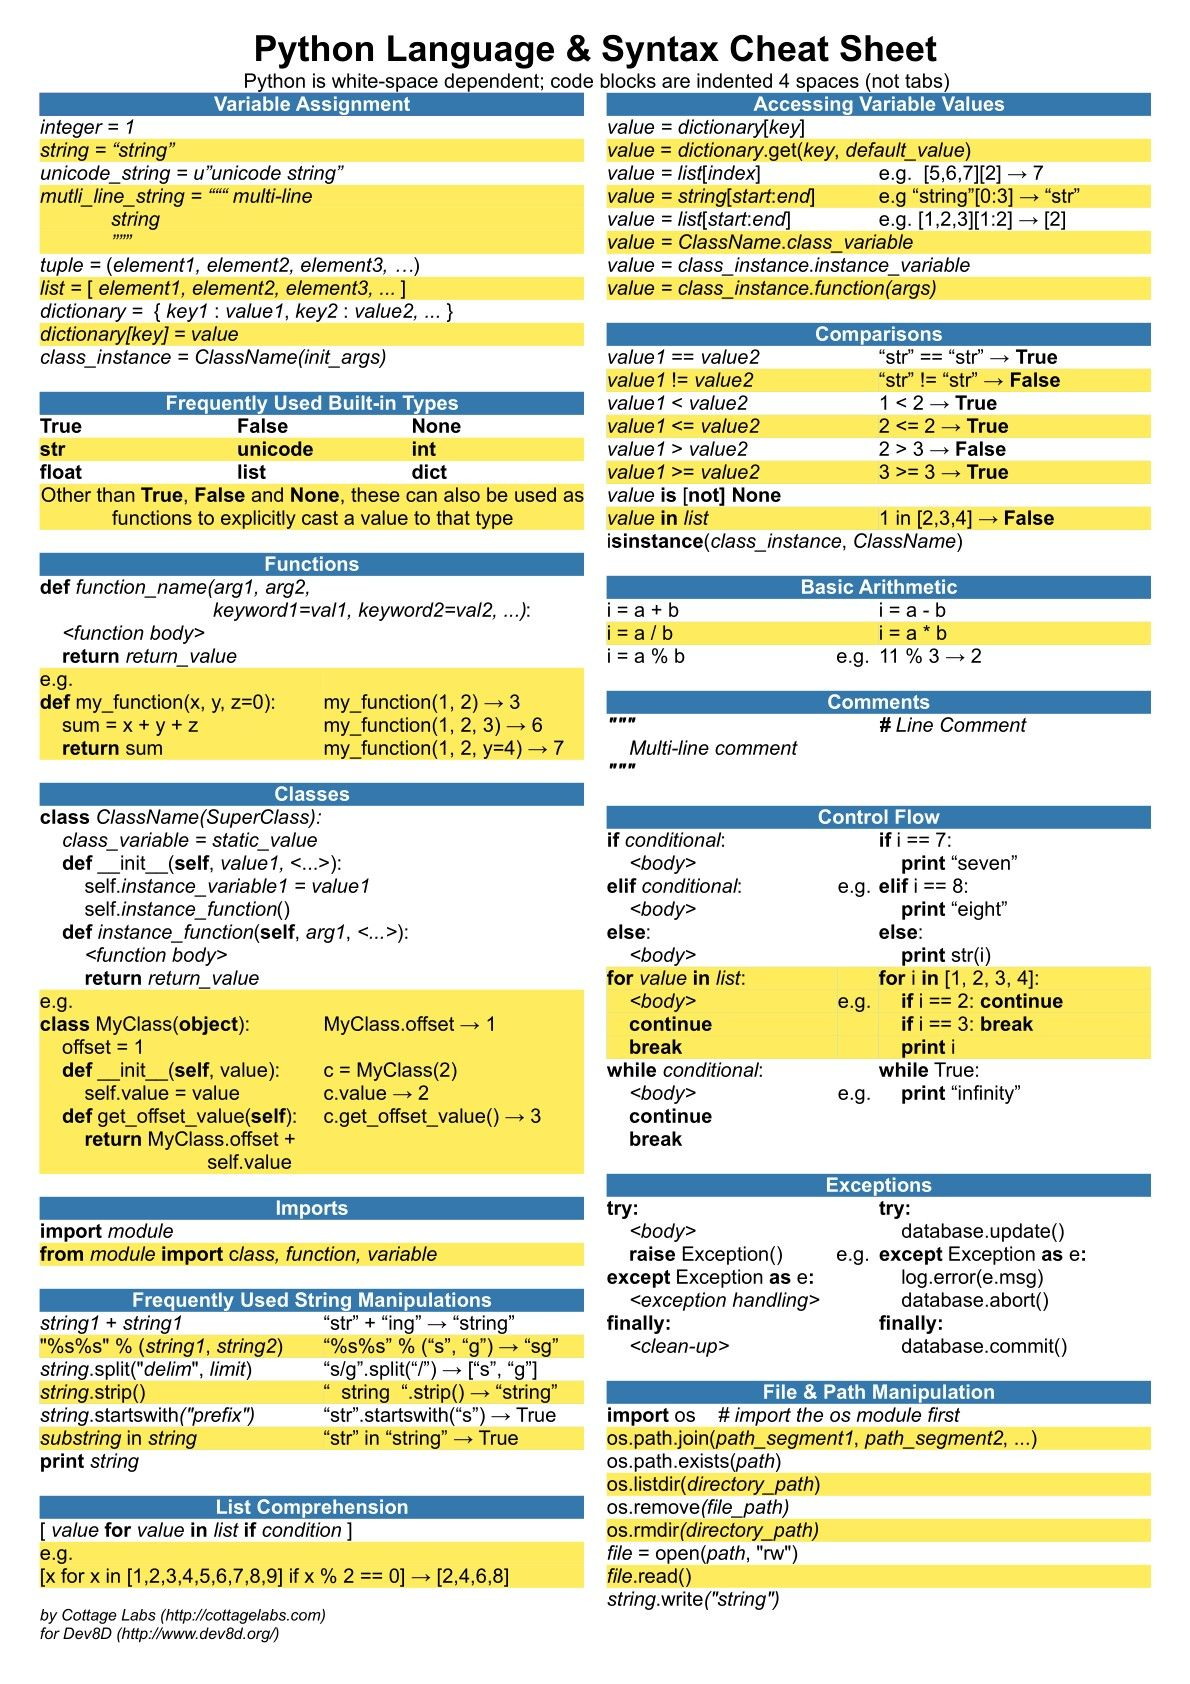 Python Language And Syntax Cheat Sheet By Cottage Labs